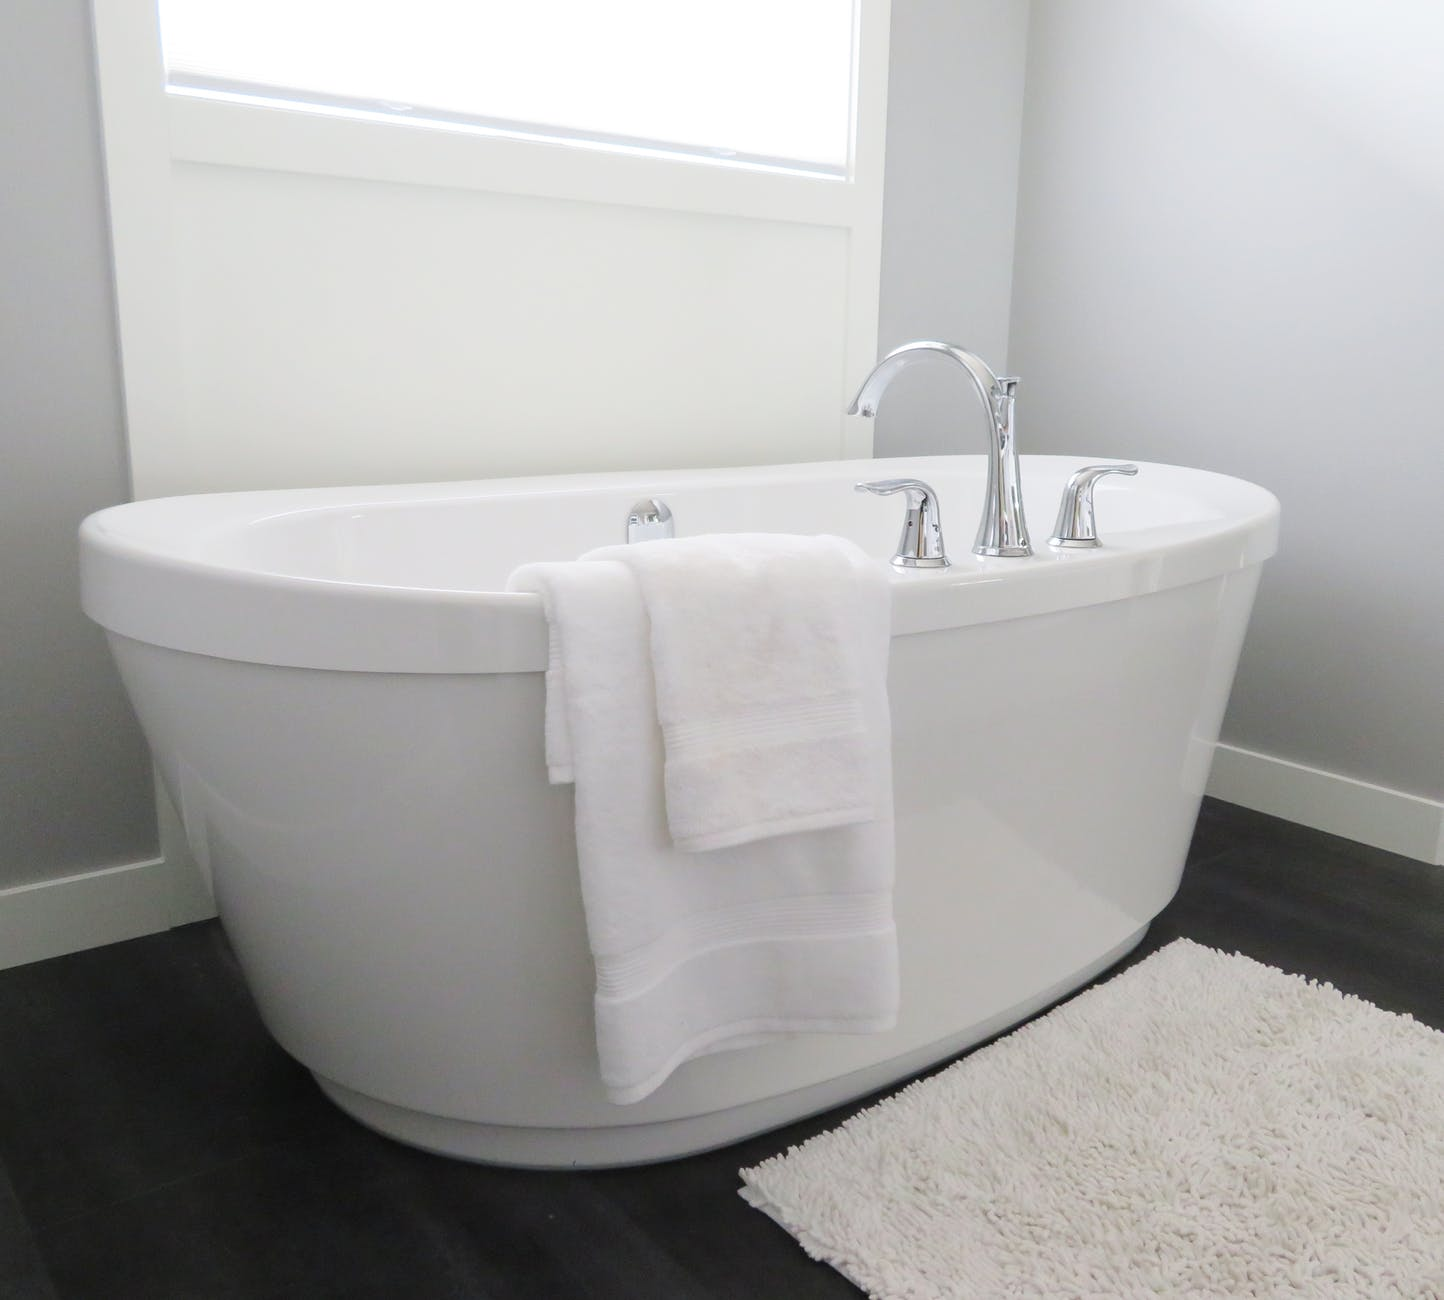 bathroom bathtub ceramic clean